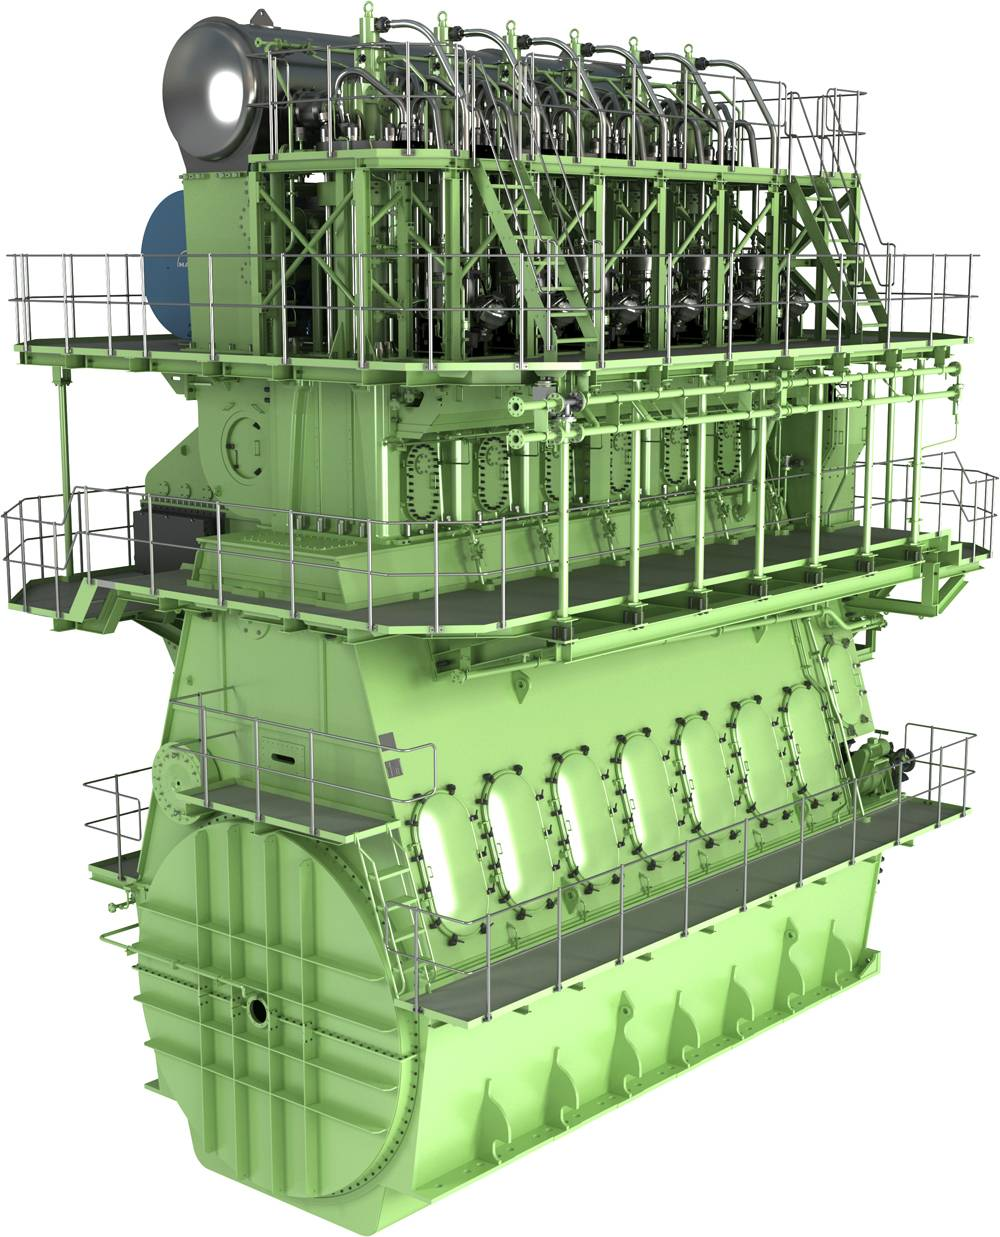 The MAN B&W G60ME-C engine will satisfy IMO environmental standards as well as the shipowners